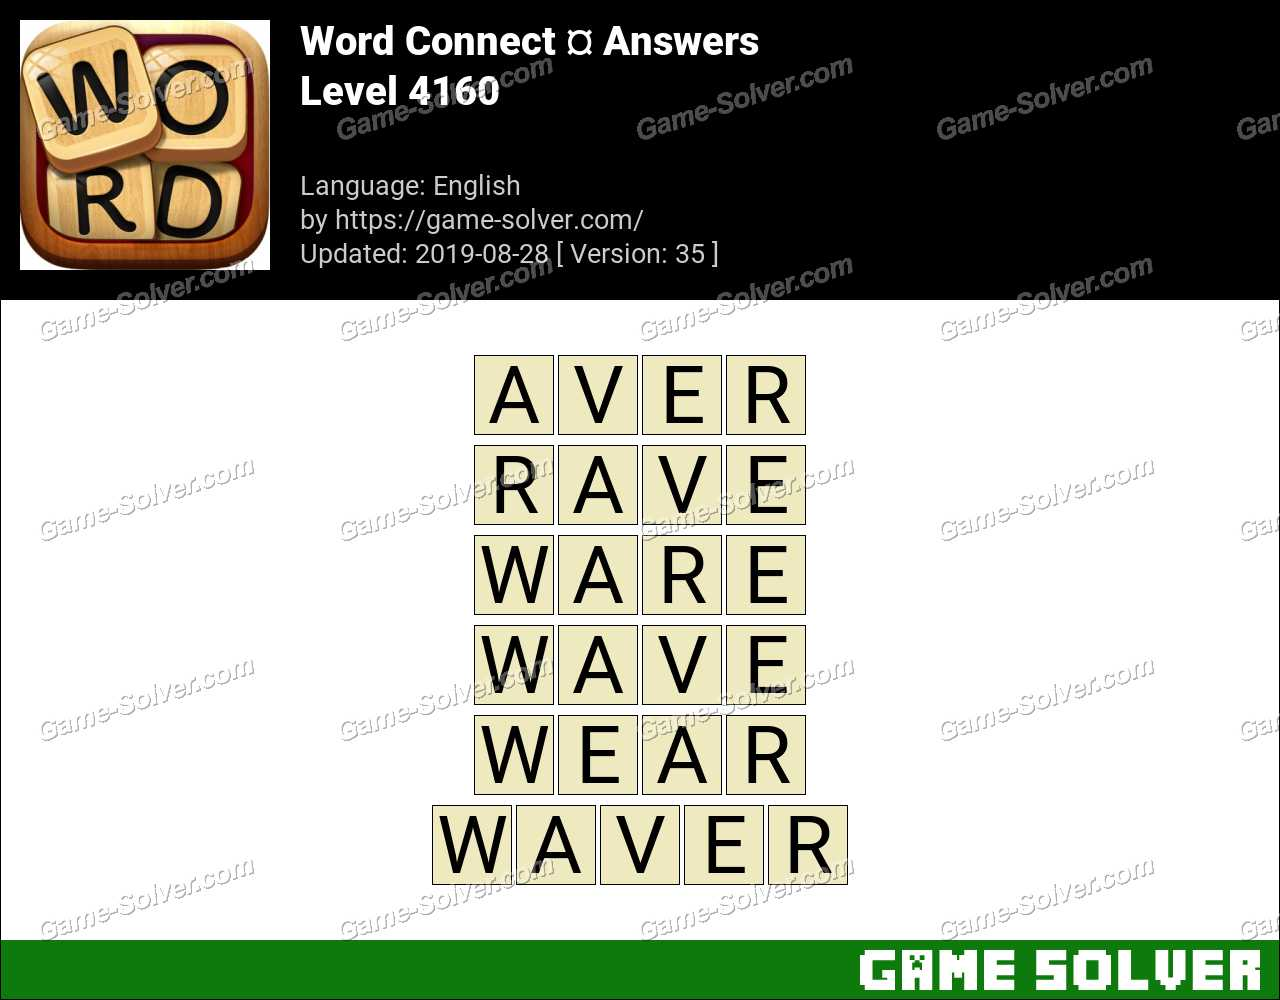 Word Connect Level 4160 Answers